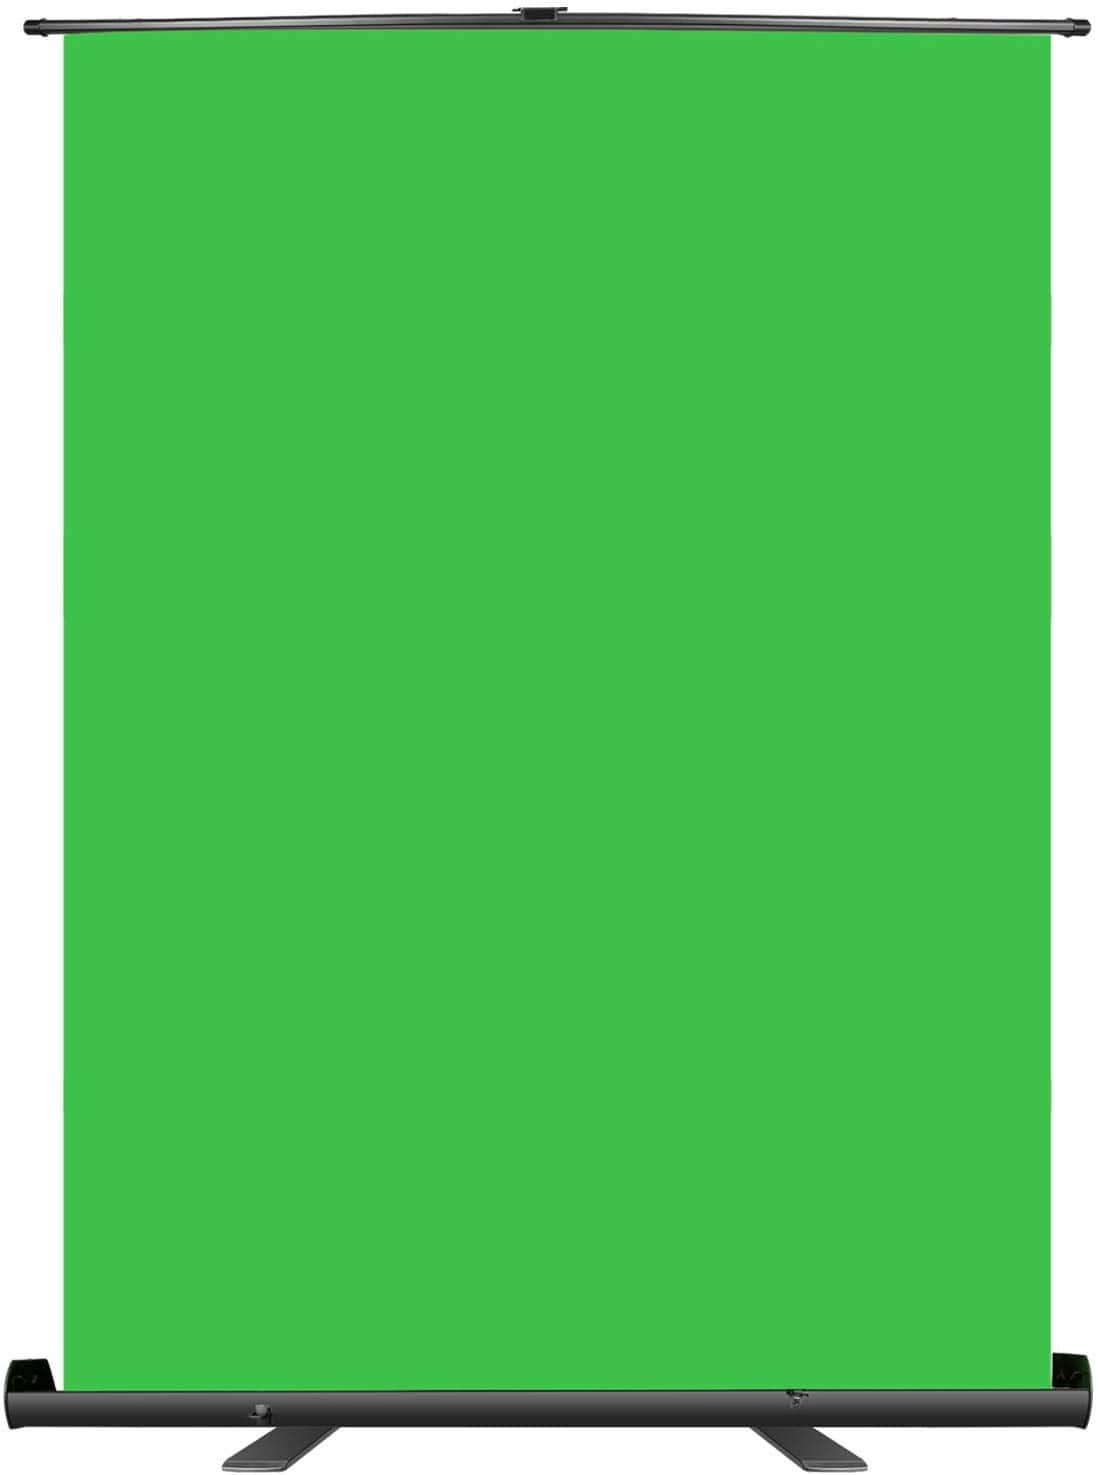 Neewer Green Screen Chromakey Backdrop (Pull-up, locking frame) - $78.00 + Free Shipping